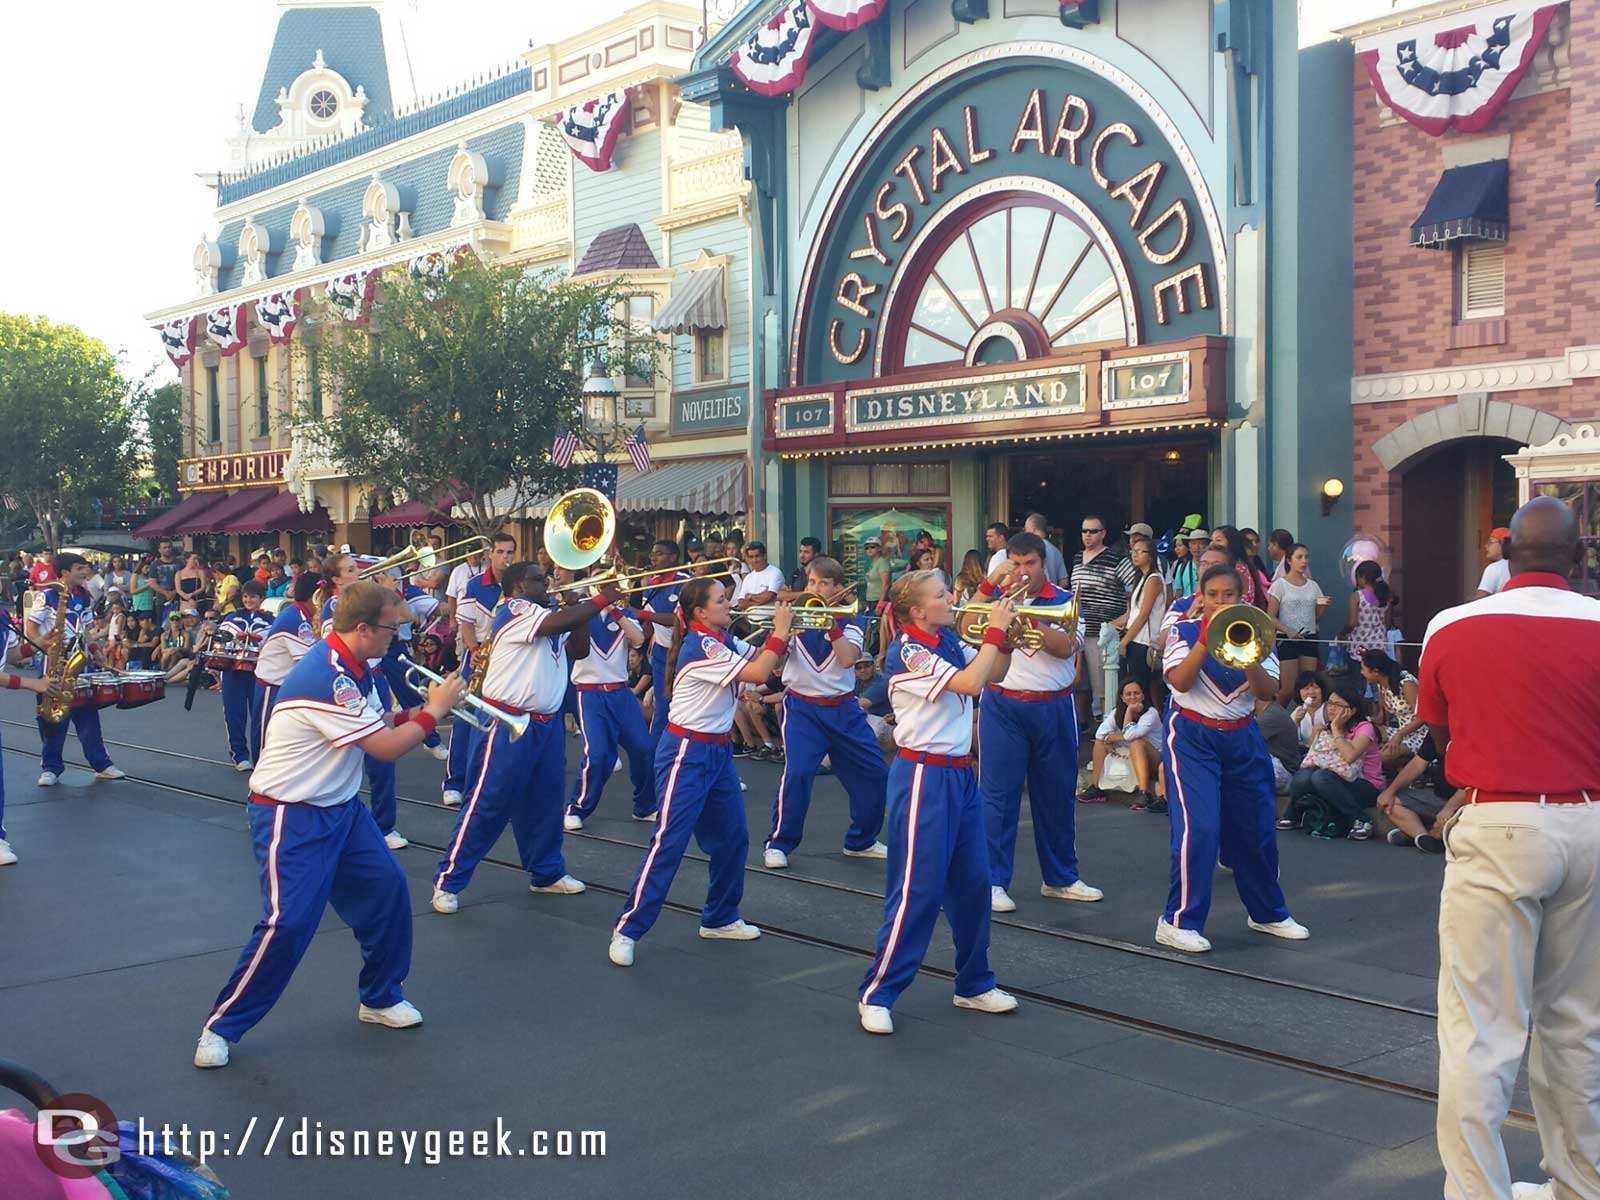 The 2014 #Disneyland All-American College Band performing on Main Street USA